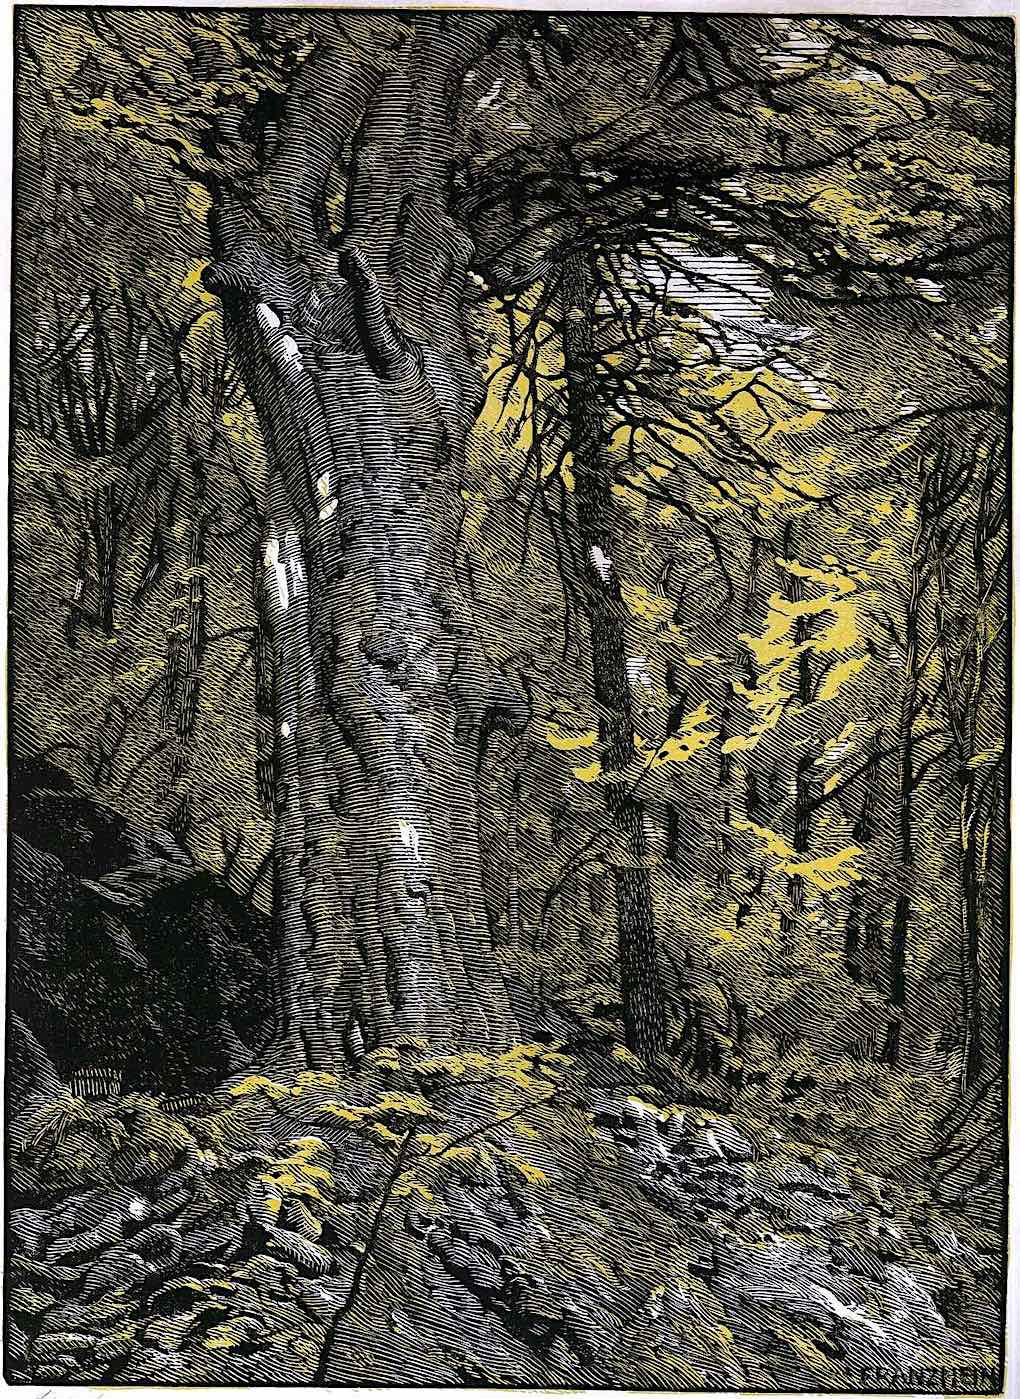 Franz Hein art, a tree trunk in a forest